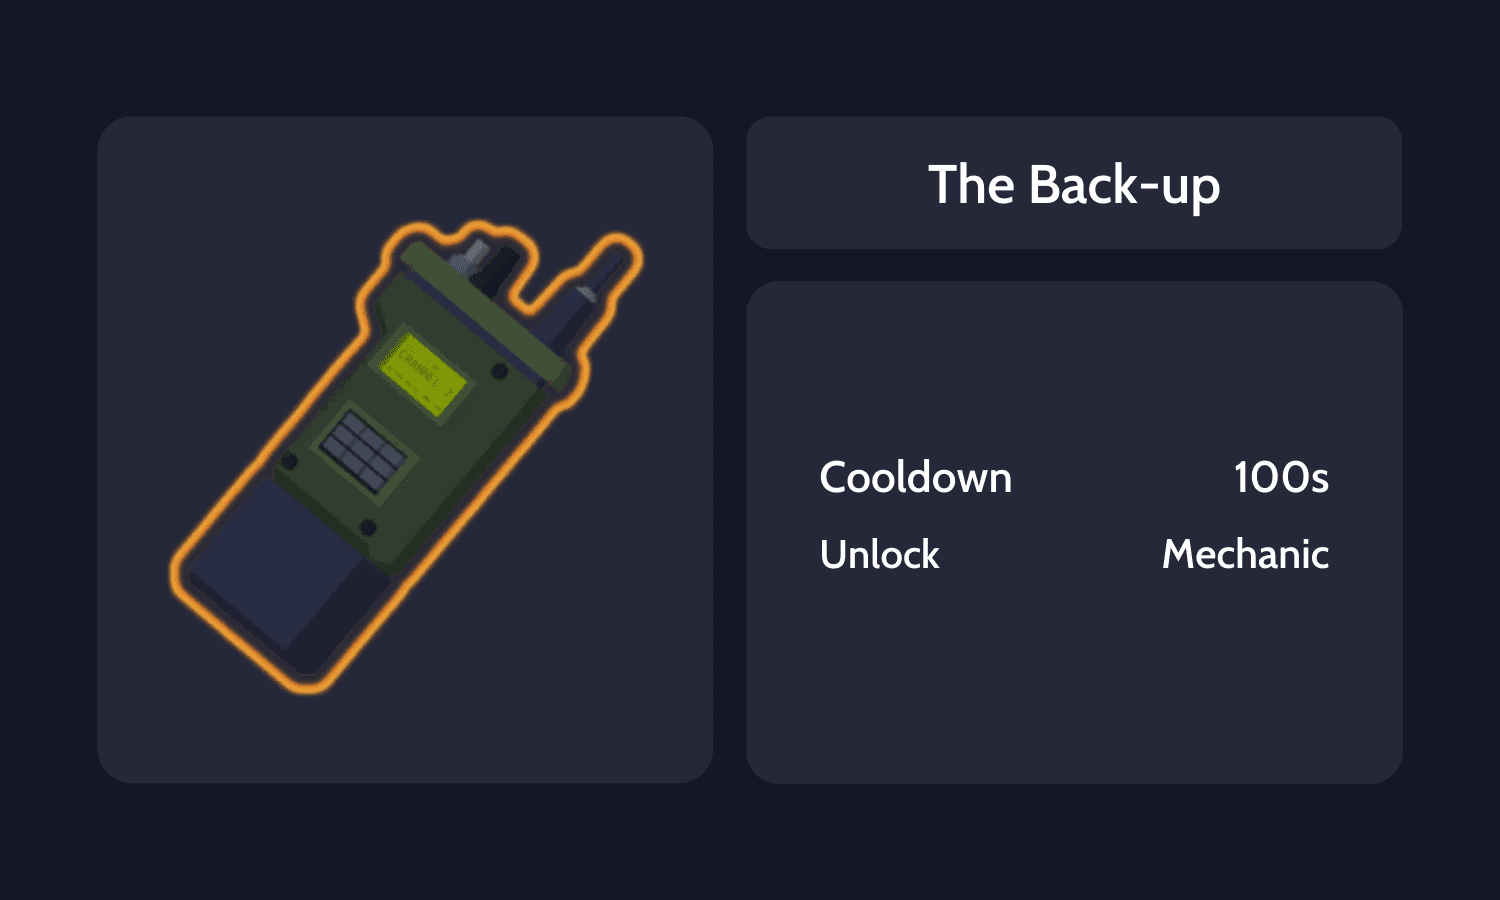 The Back-up Info Card